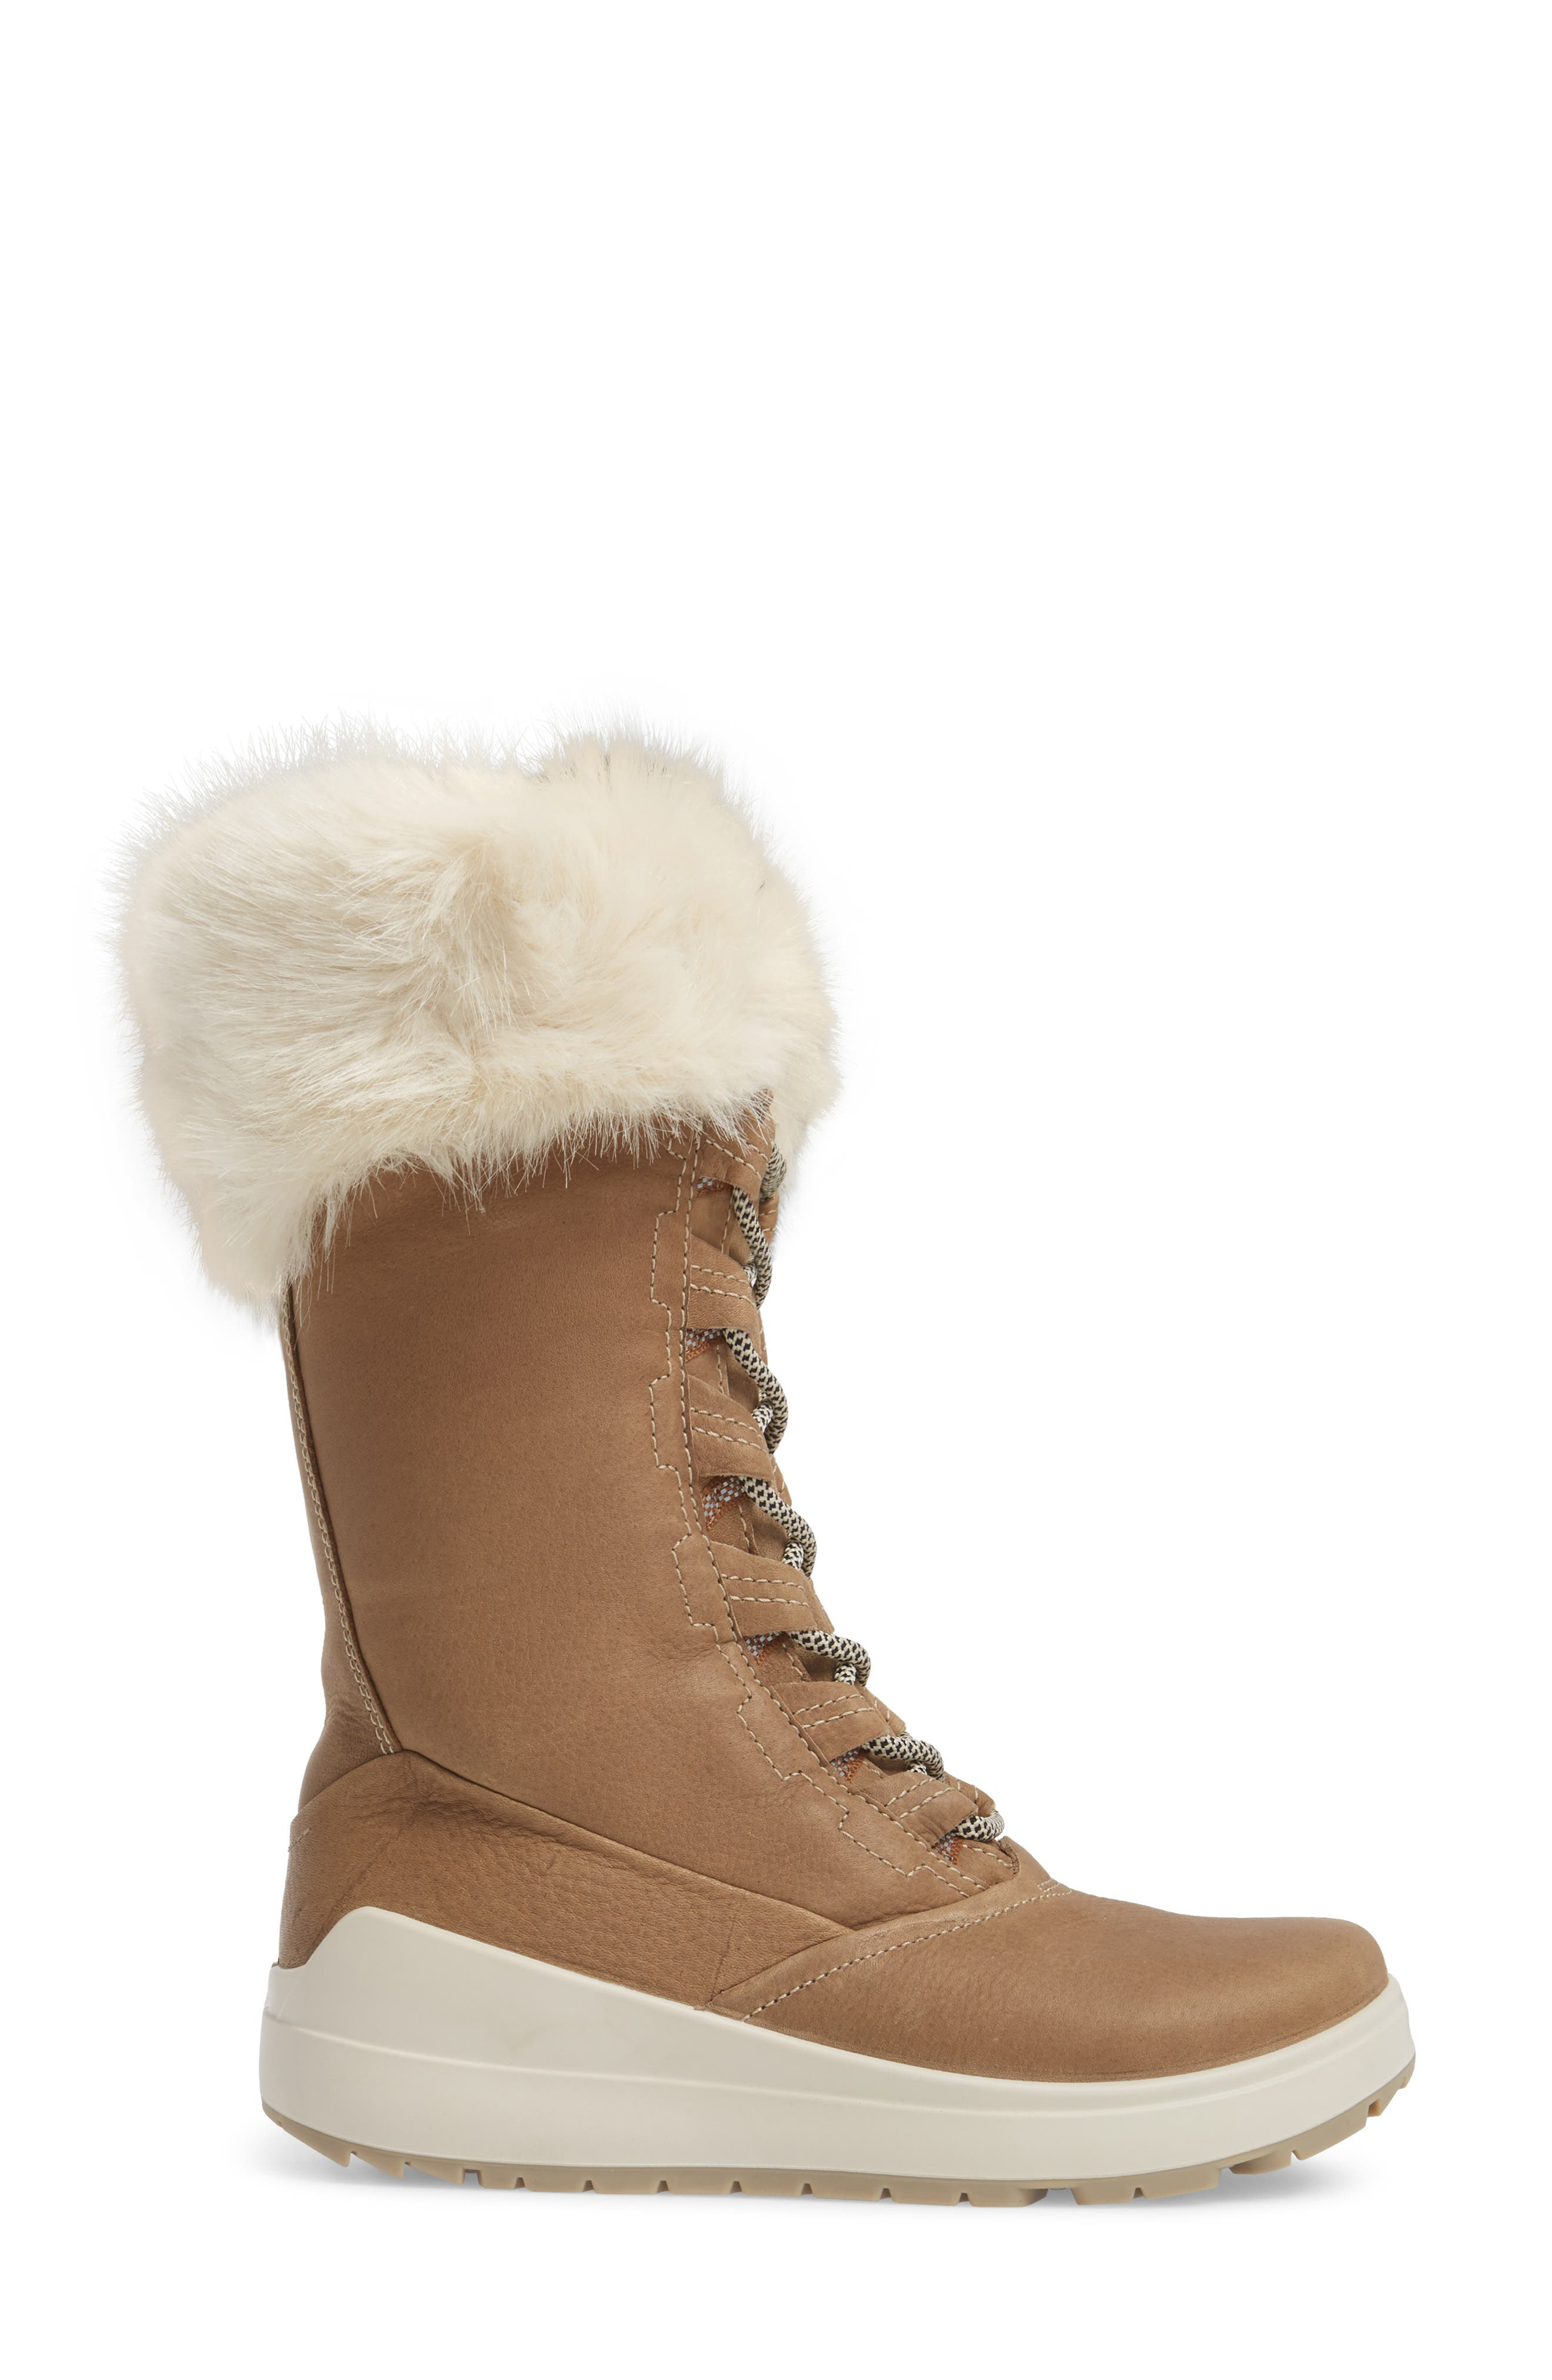 Noyce Siberia Hydromax Water Resistant Winter Boot with Faux Fur Trim,                             Alternate thumbnail 6, color,